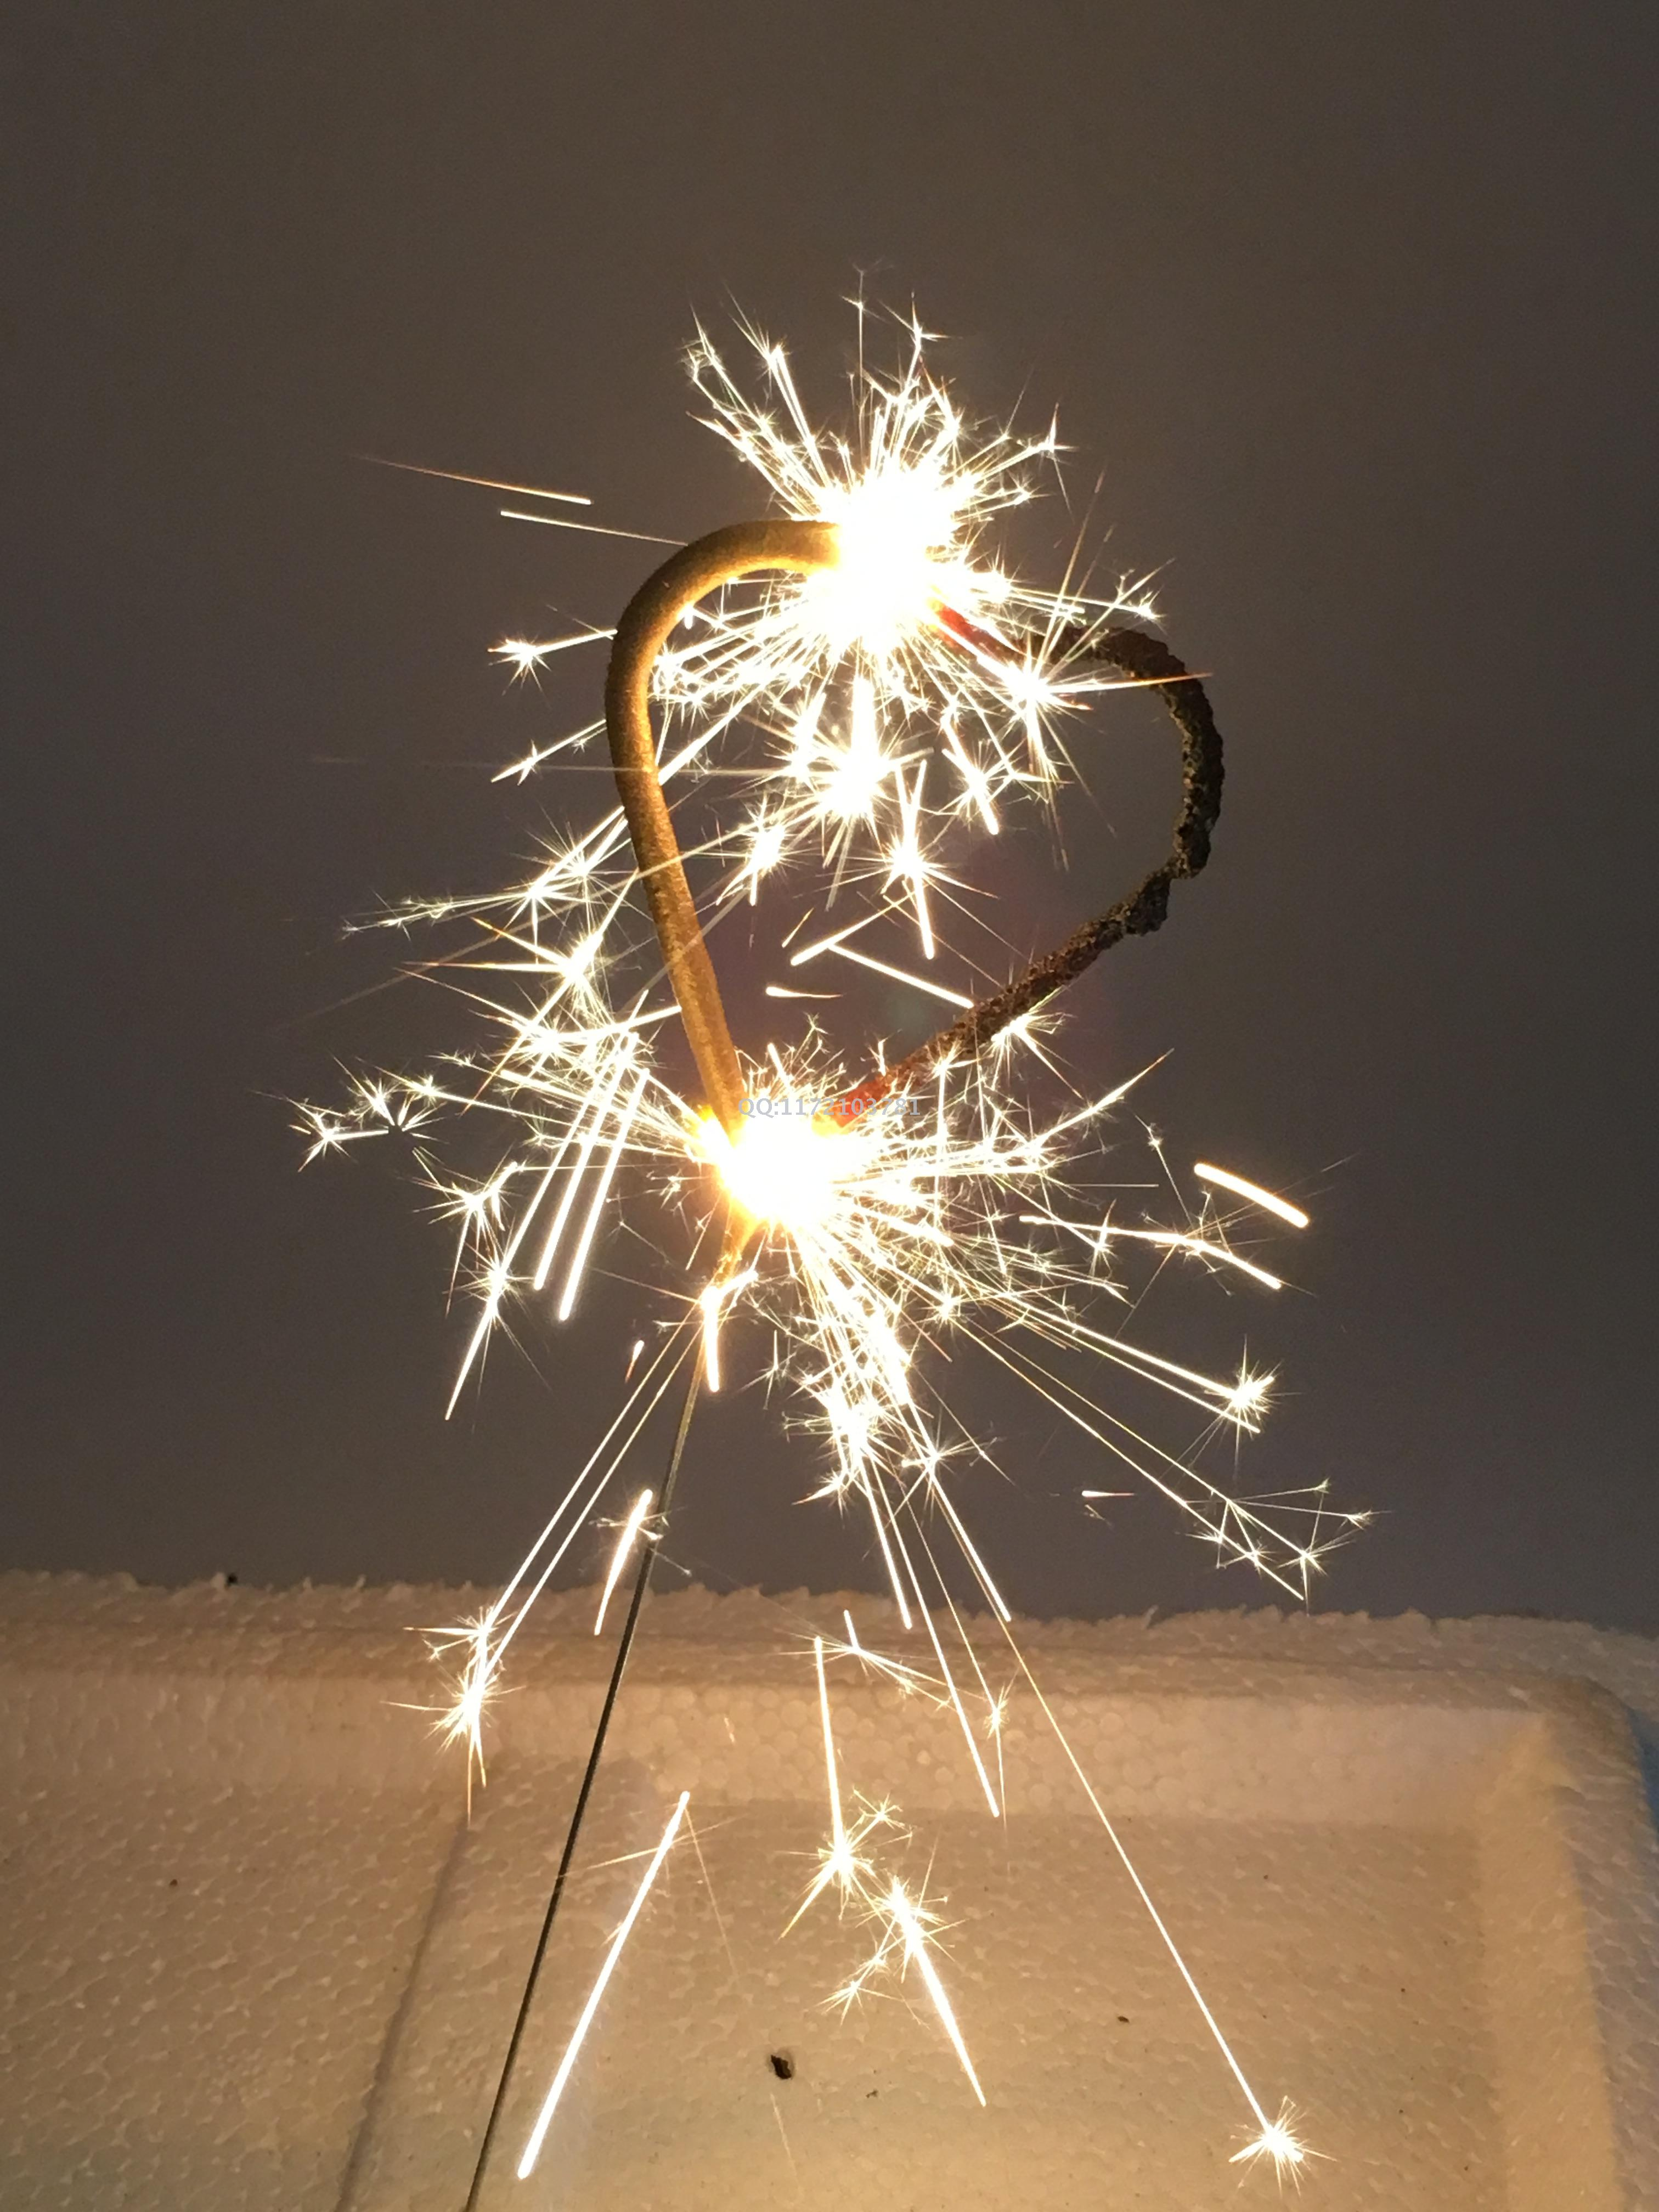 Supply Birthday Candle Cake Fireworks Love Cold Fireworks